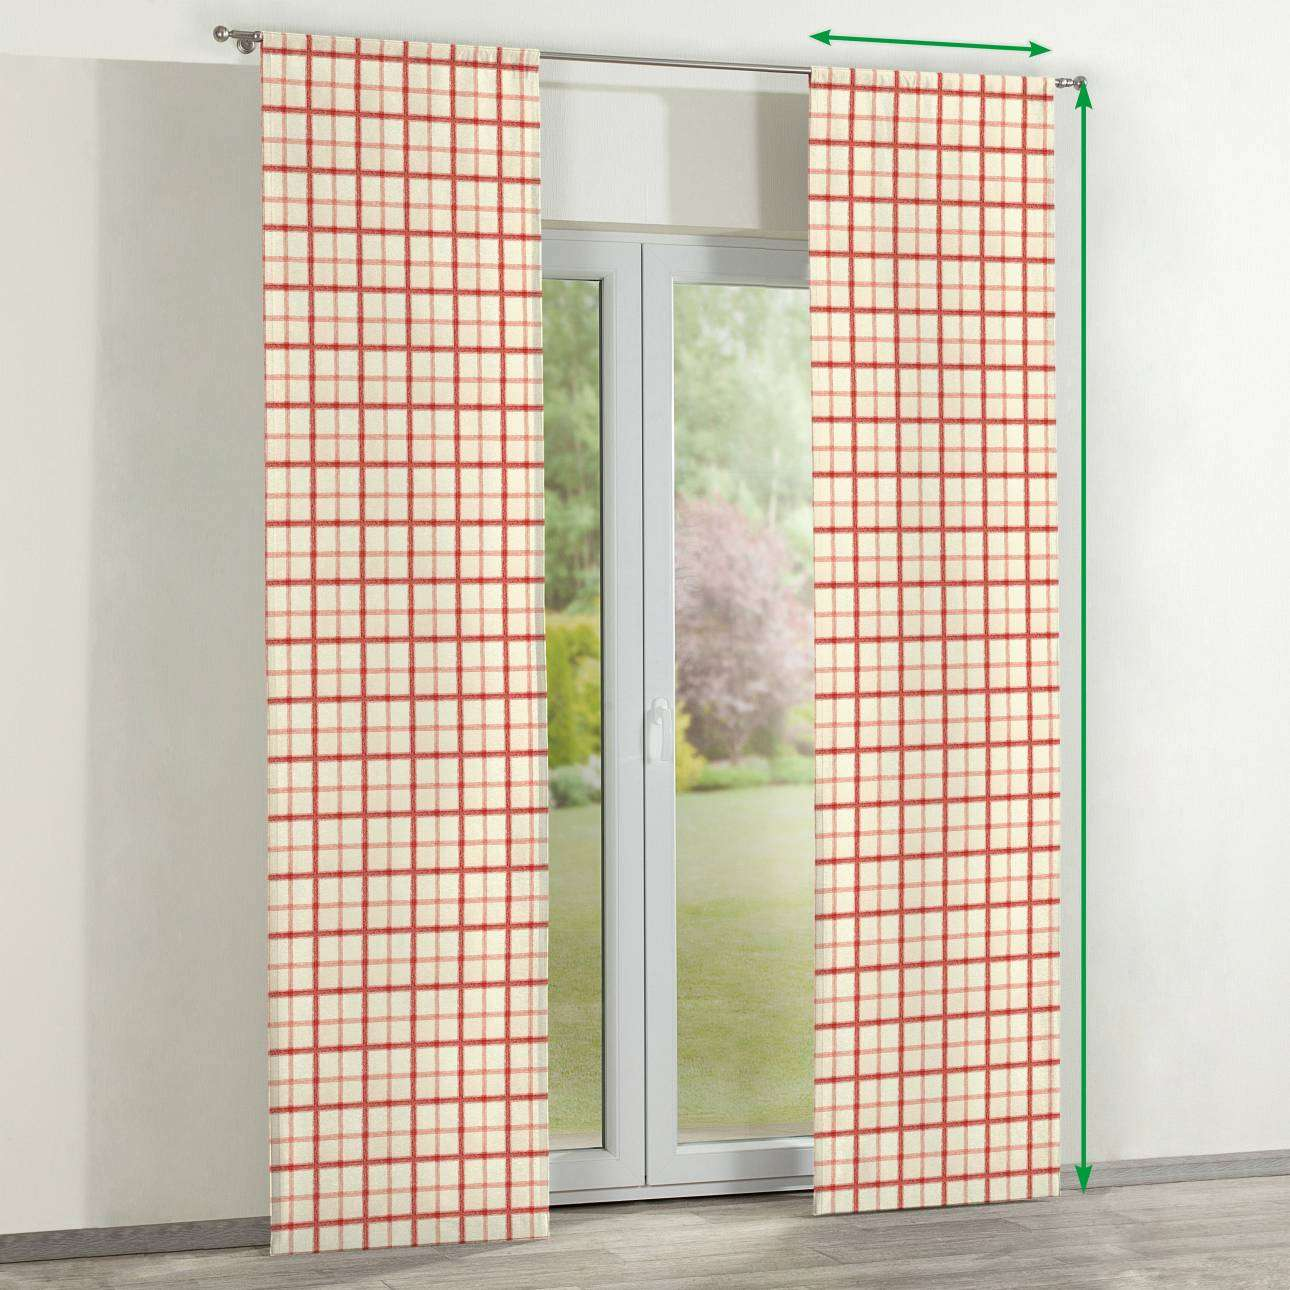 Slot panel curtains – Set of 2 in collection Avinon, fabric: 131-15